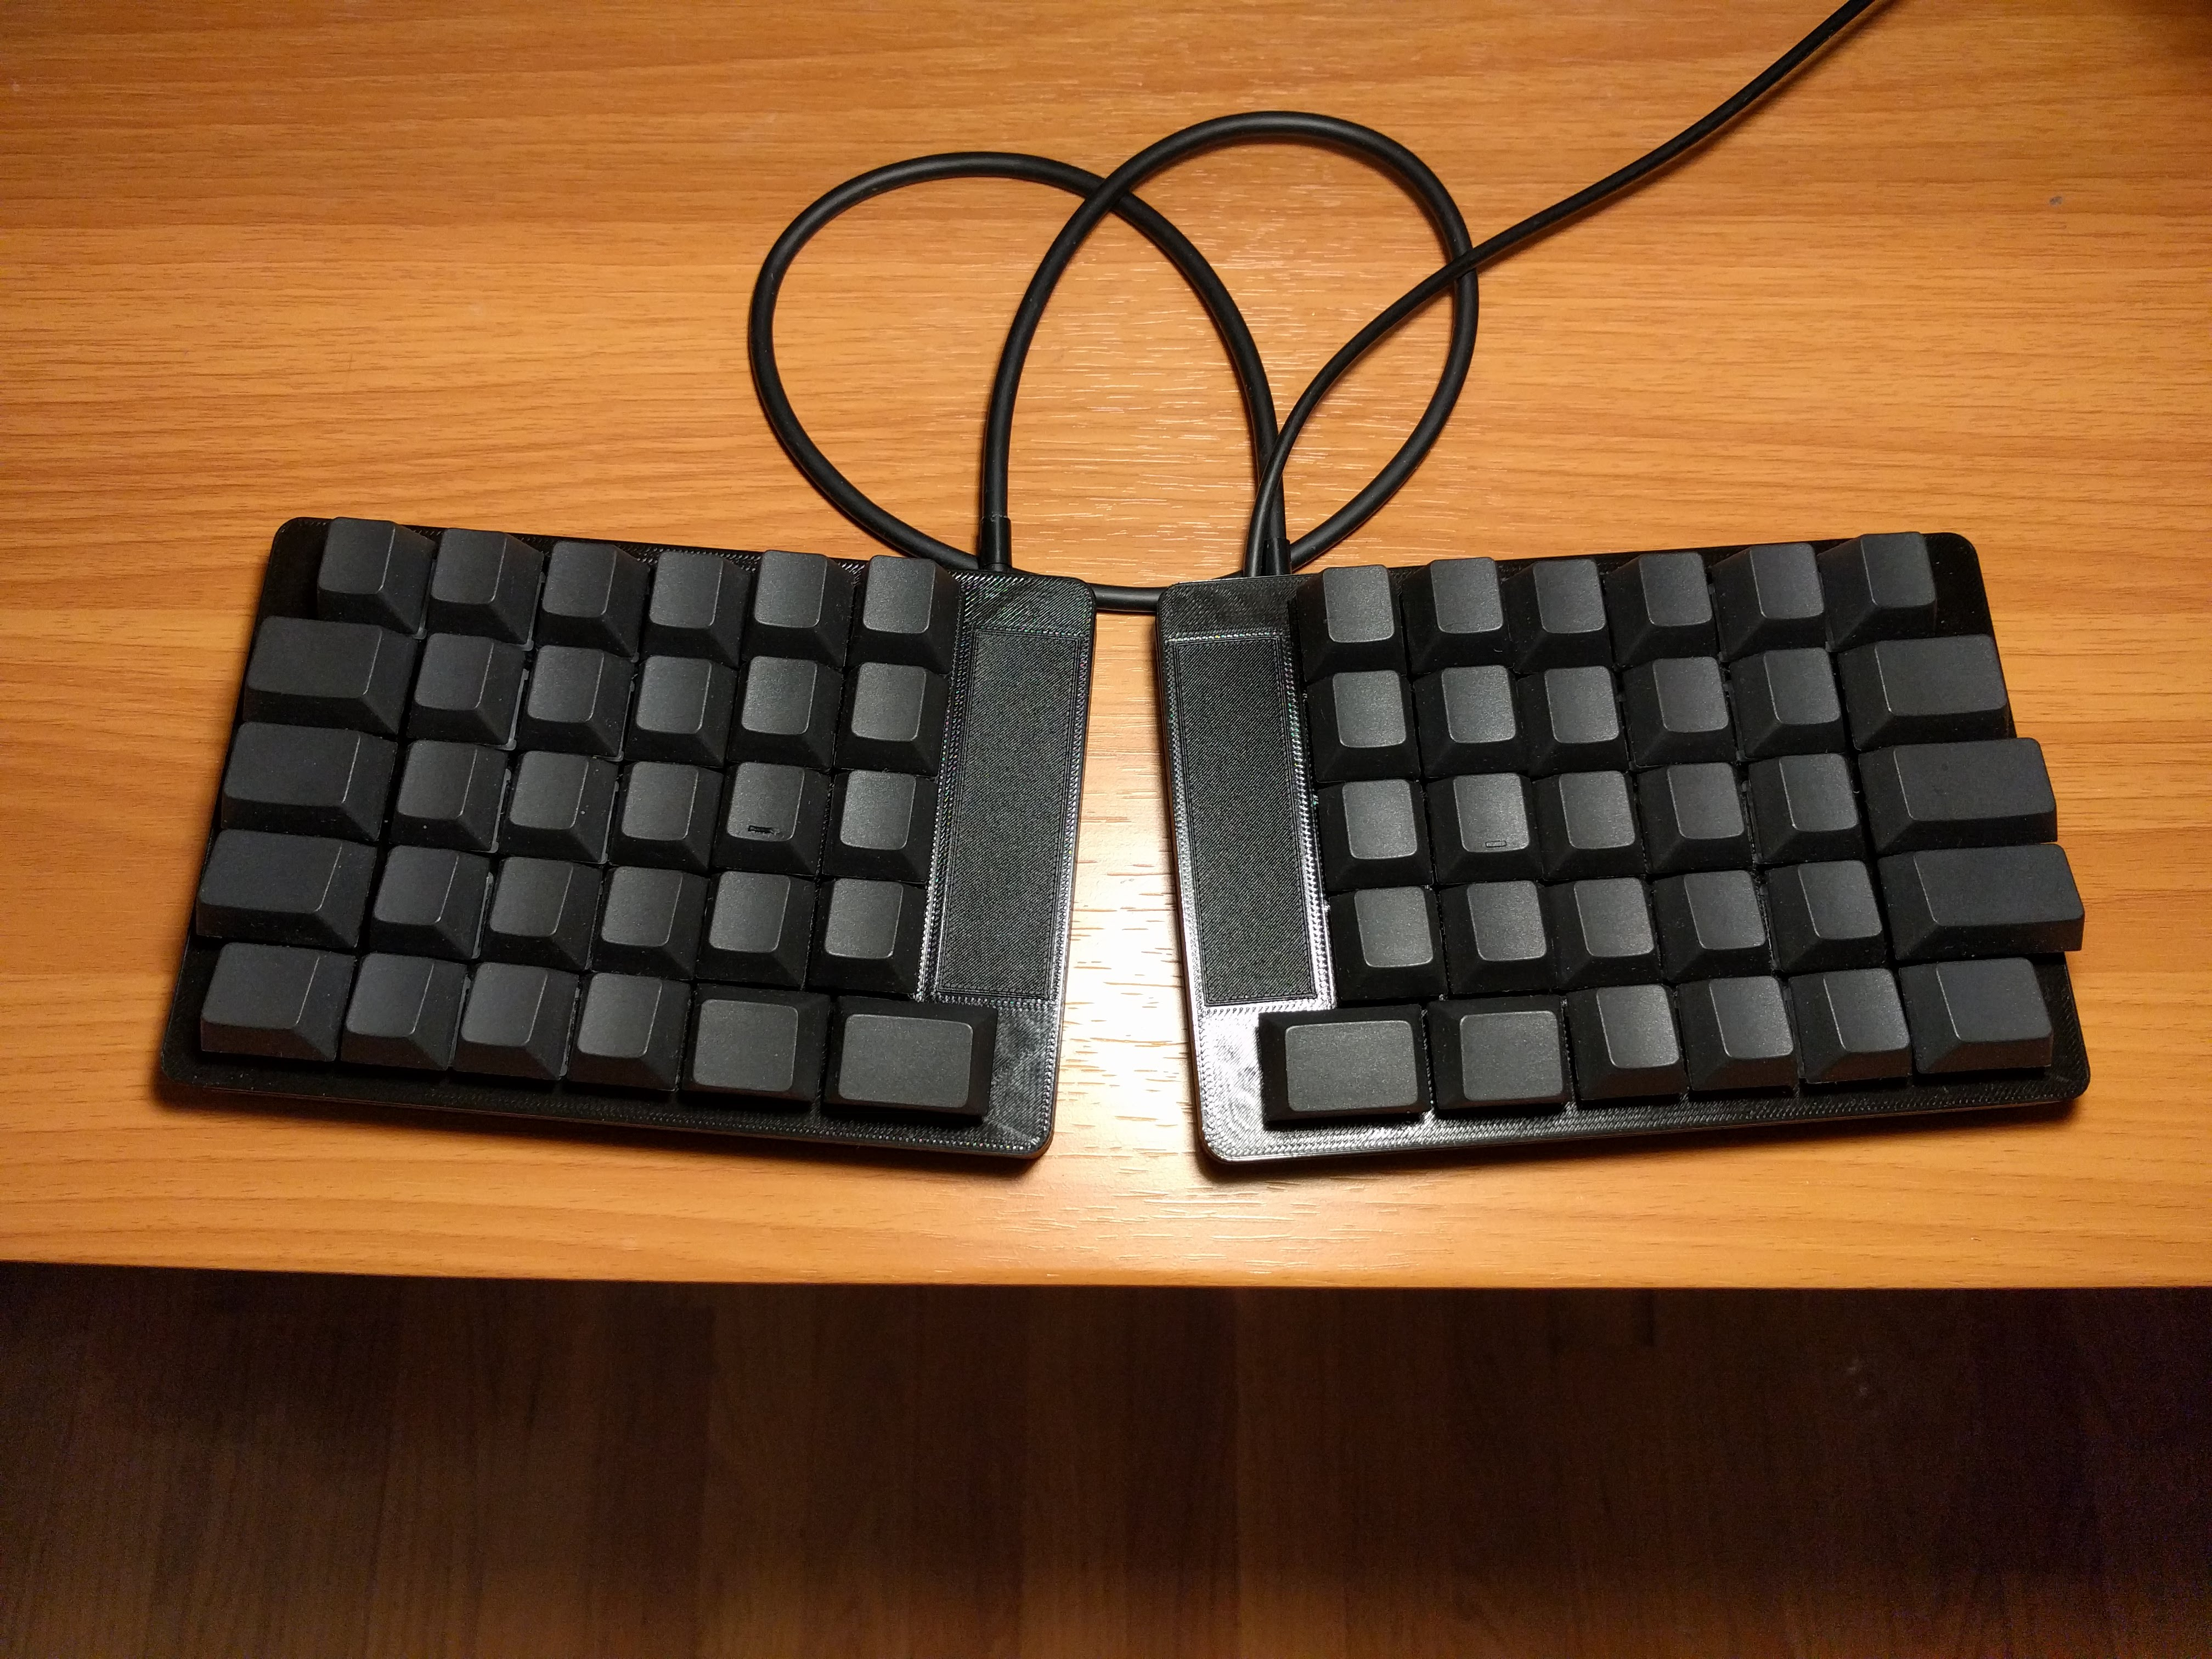 Darknight: a 60% split keyboard